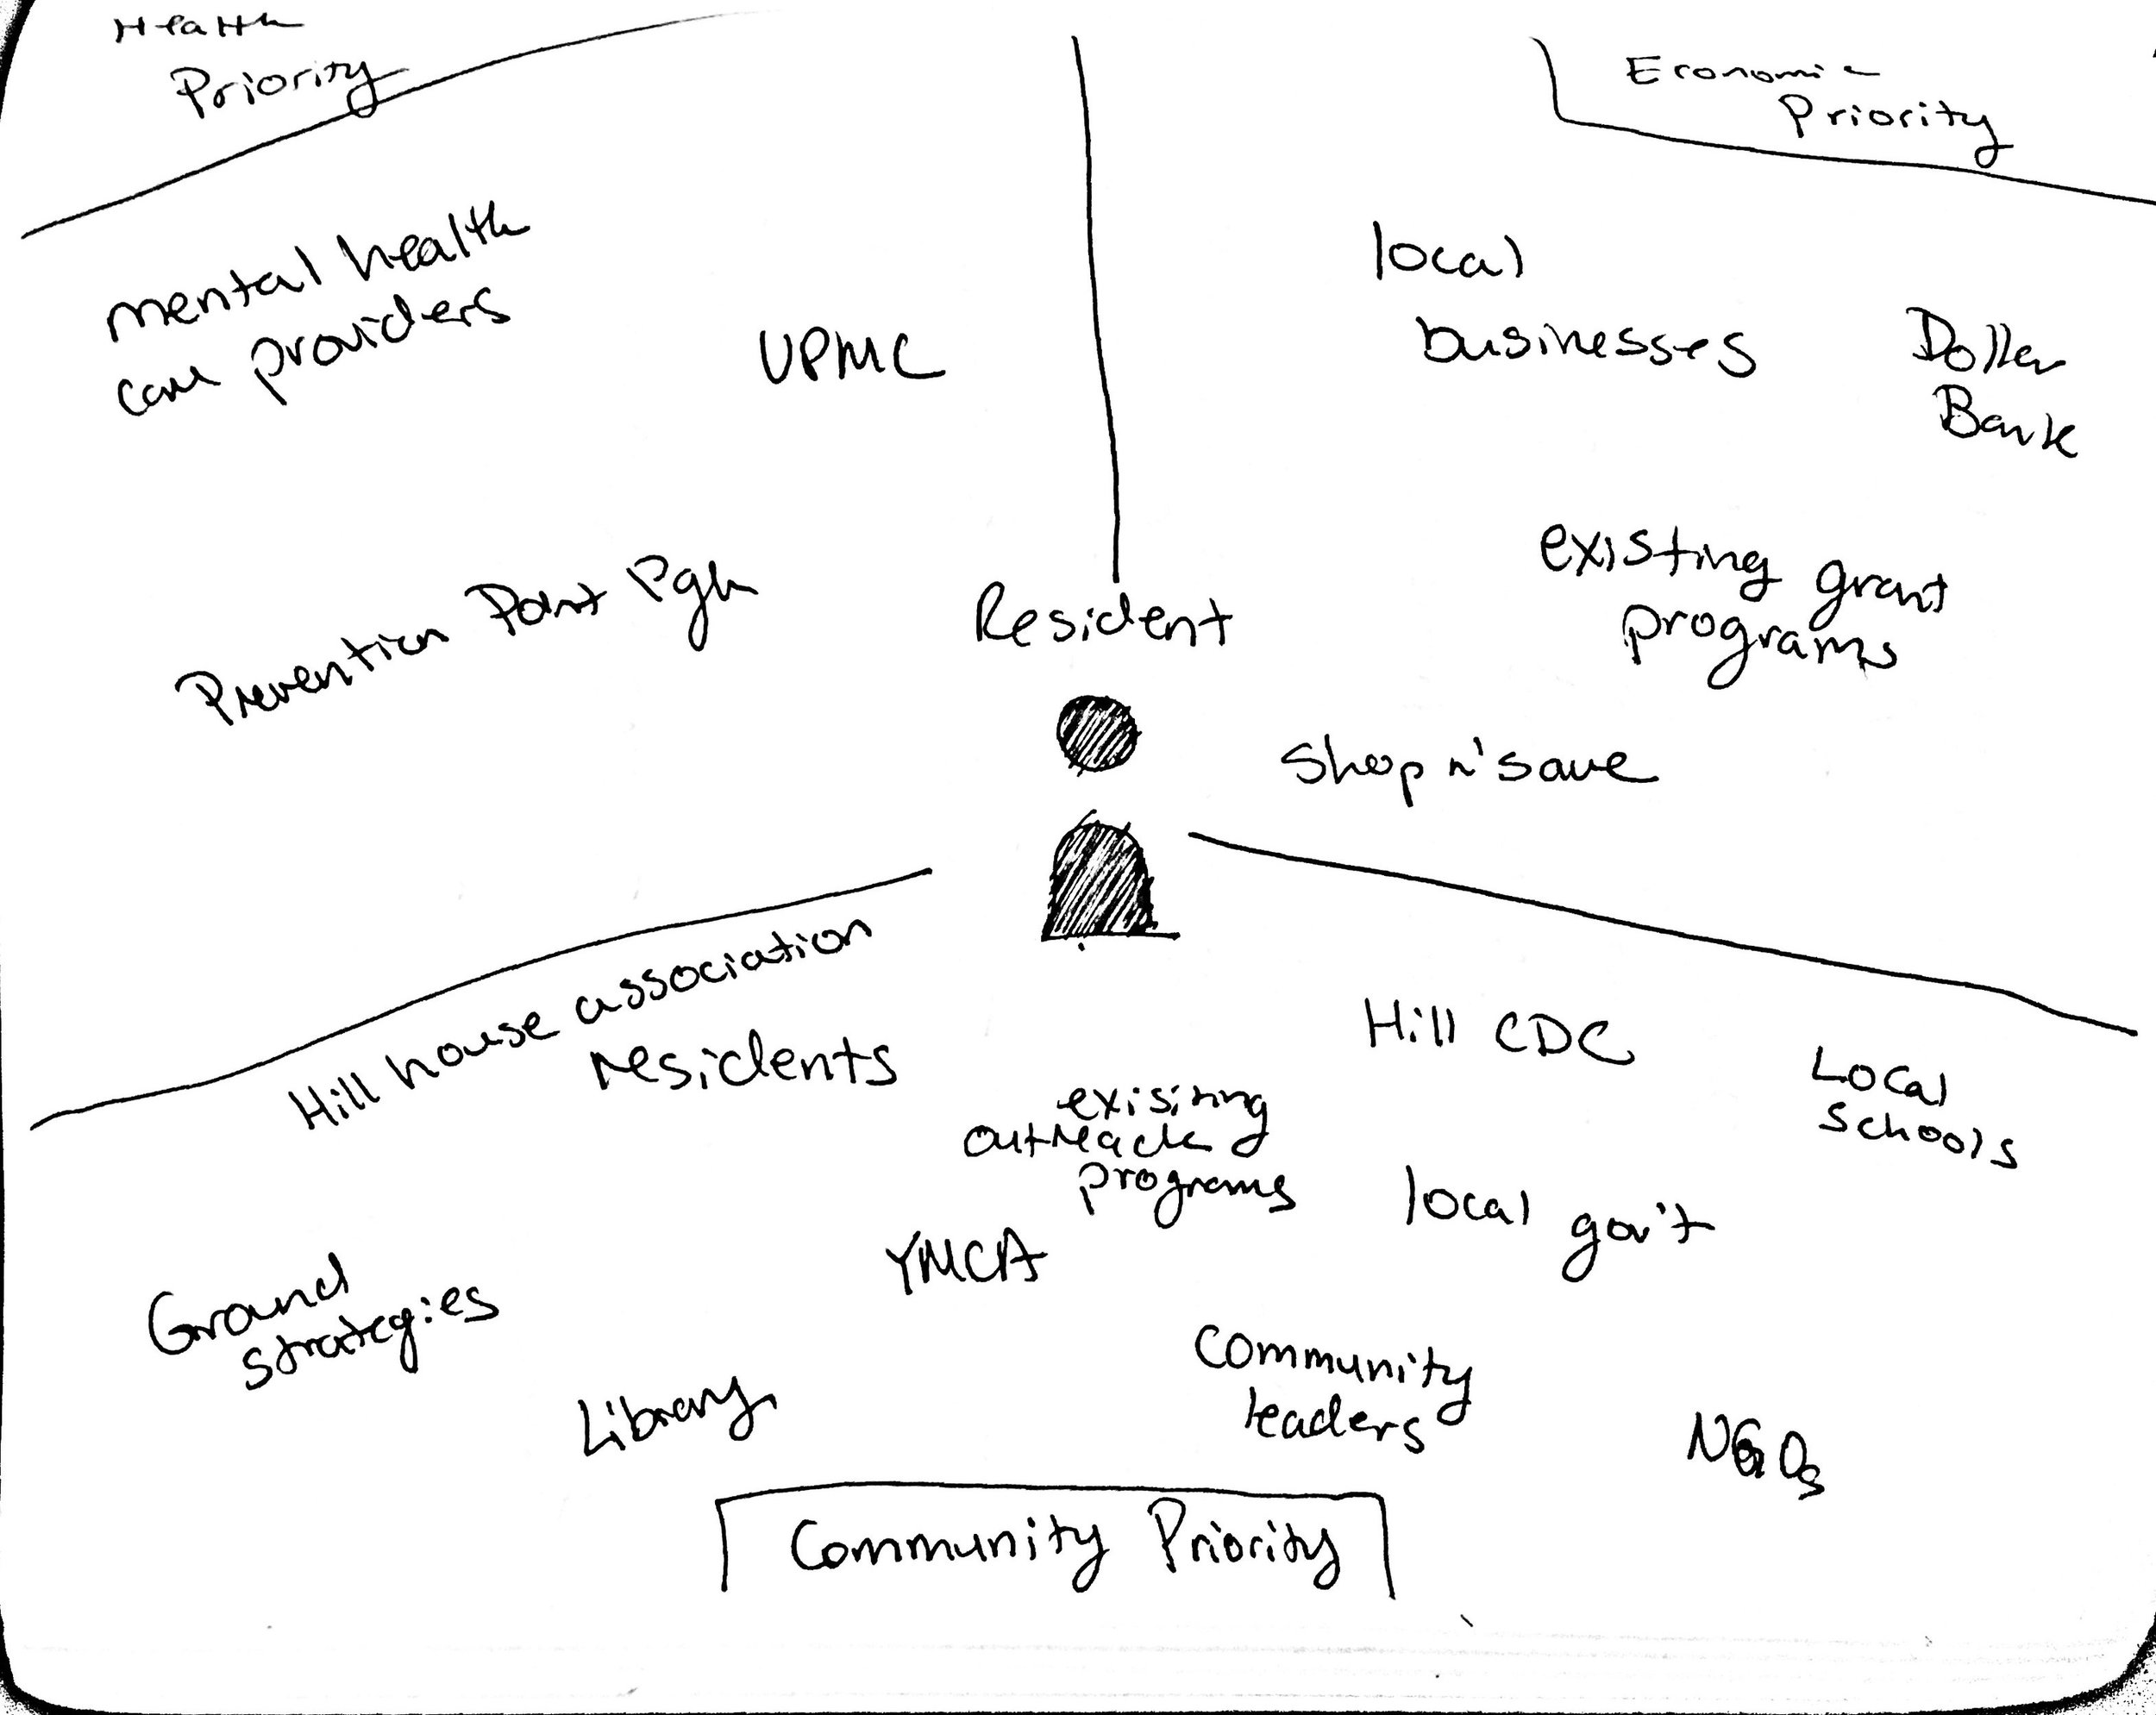 A broader look at all the kinds of institutions a resident interacts with